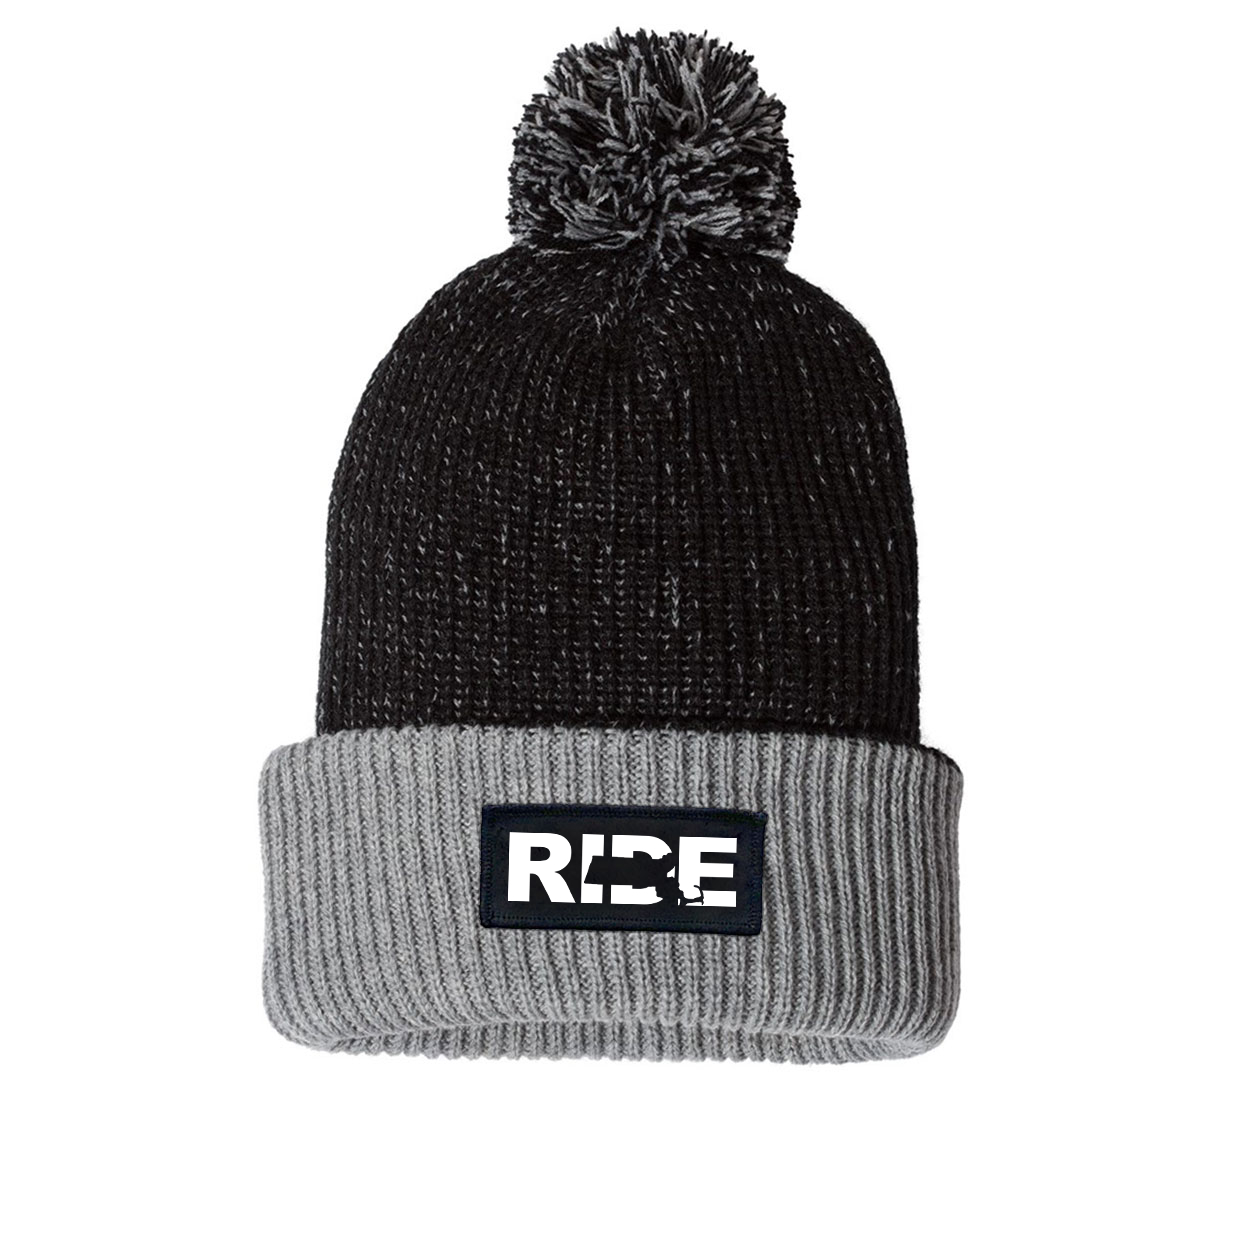 Ride Massachusetts Night Out Woven Patch Roll Up Pom Knit Beanie Black/Gray (White Logo)